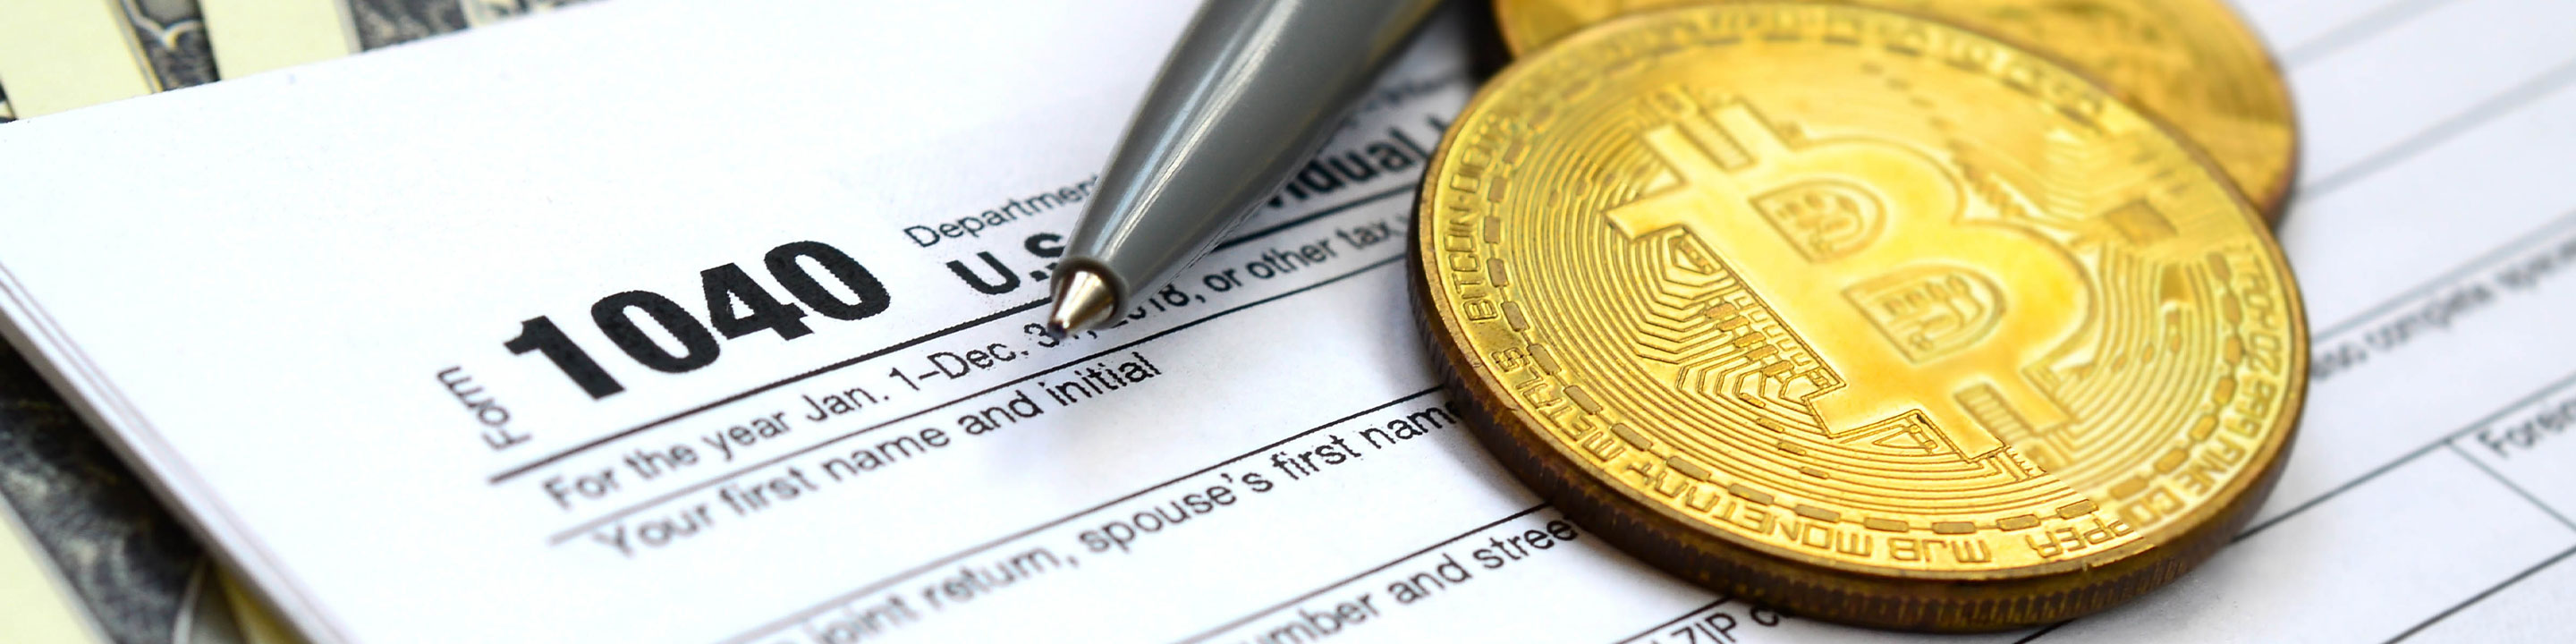 'Hodlers' Get a Break: IRS Updates Virtual Currency Transactions Guidance